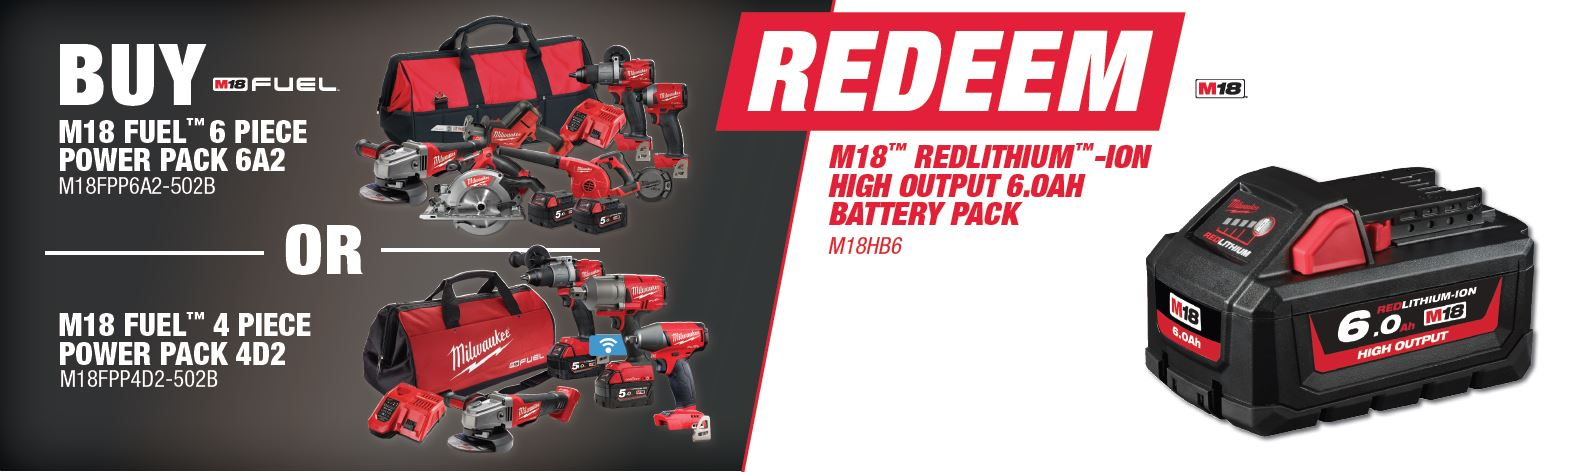 Buy Milwaukee M18FPP6A2-502B or M18FPP4D2-502B and Redeem M18HB6